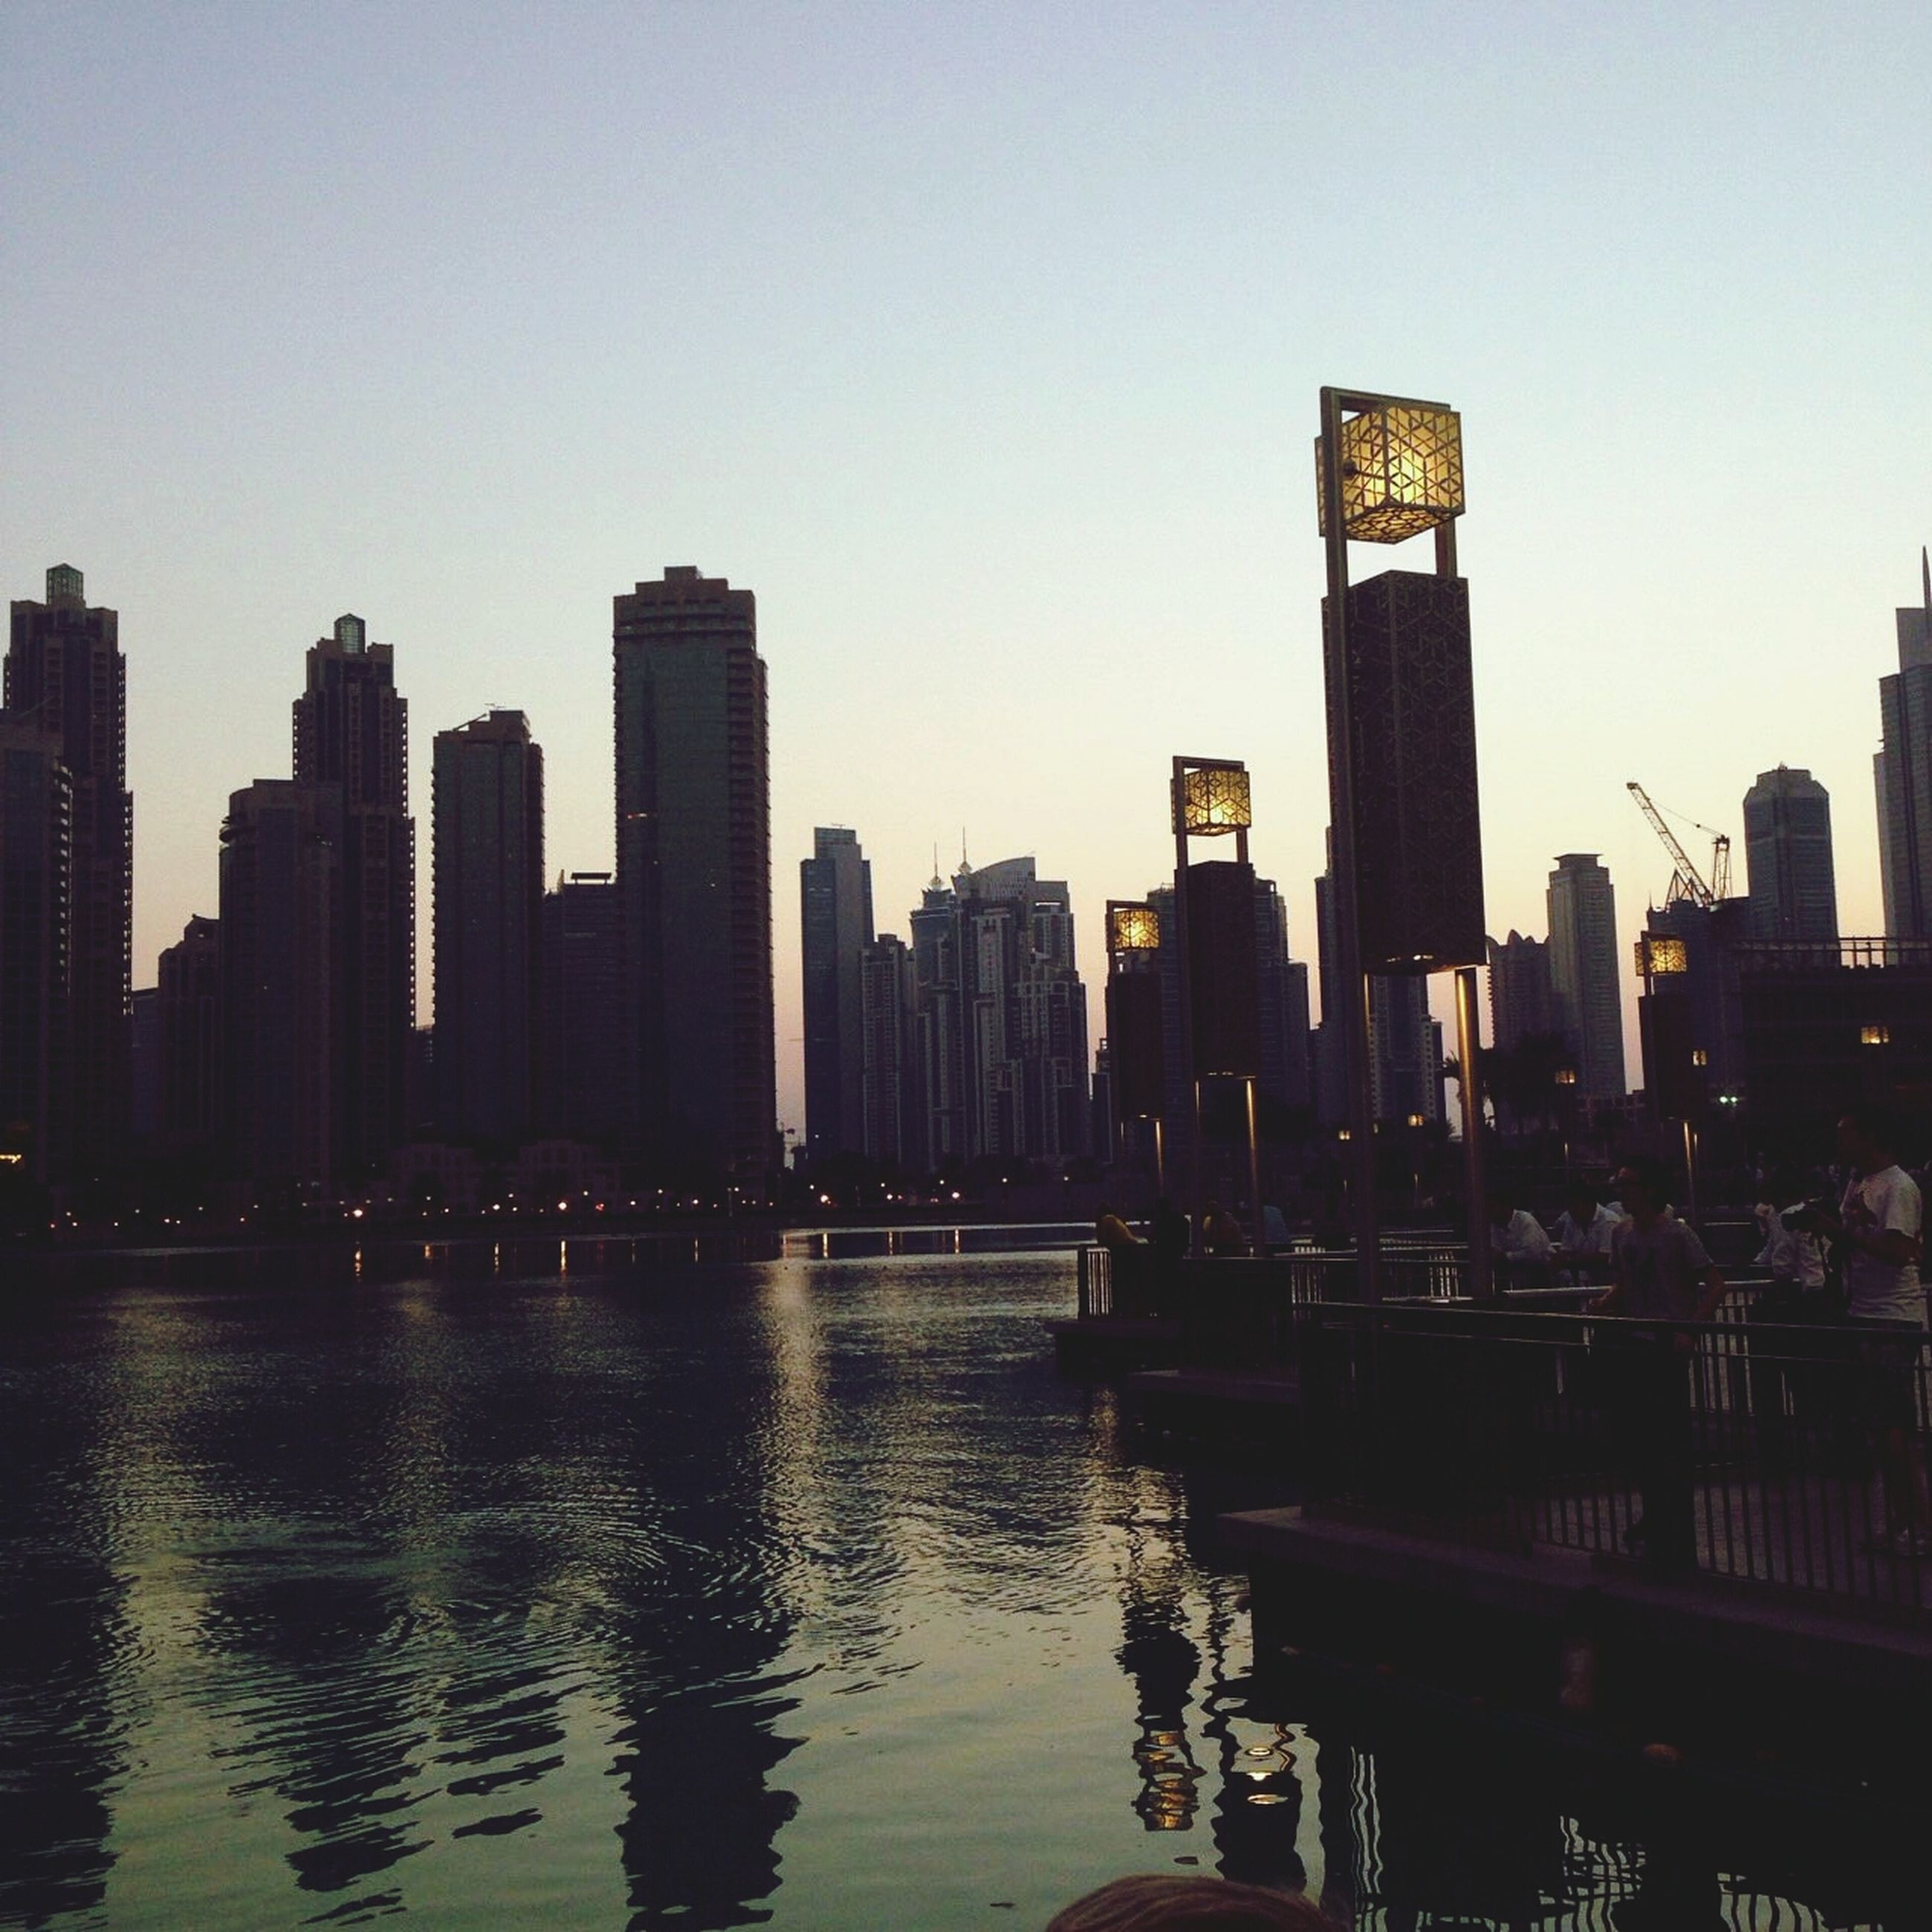 building exterior, architecture, water, built structure, city, skyscraper, clear sky, river, waterfront, urban skyline, tall - high, cityscape, tower, modern, office building, skyline, copy space, reflection, sky, financial district